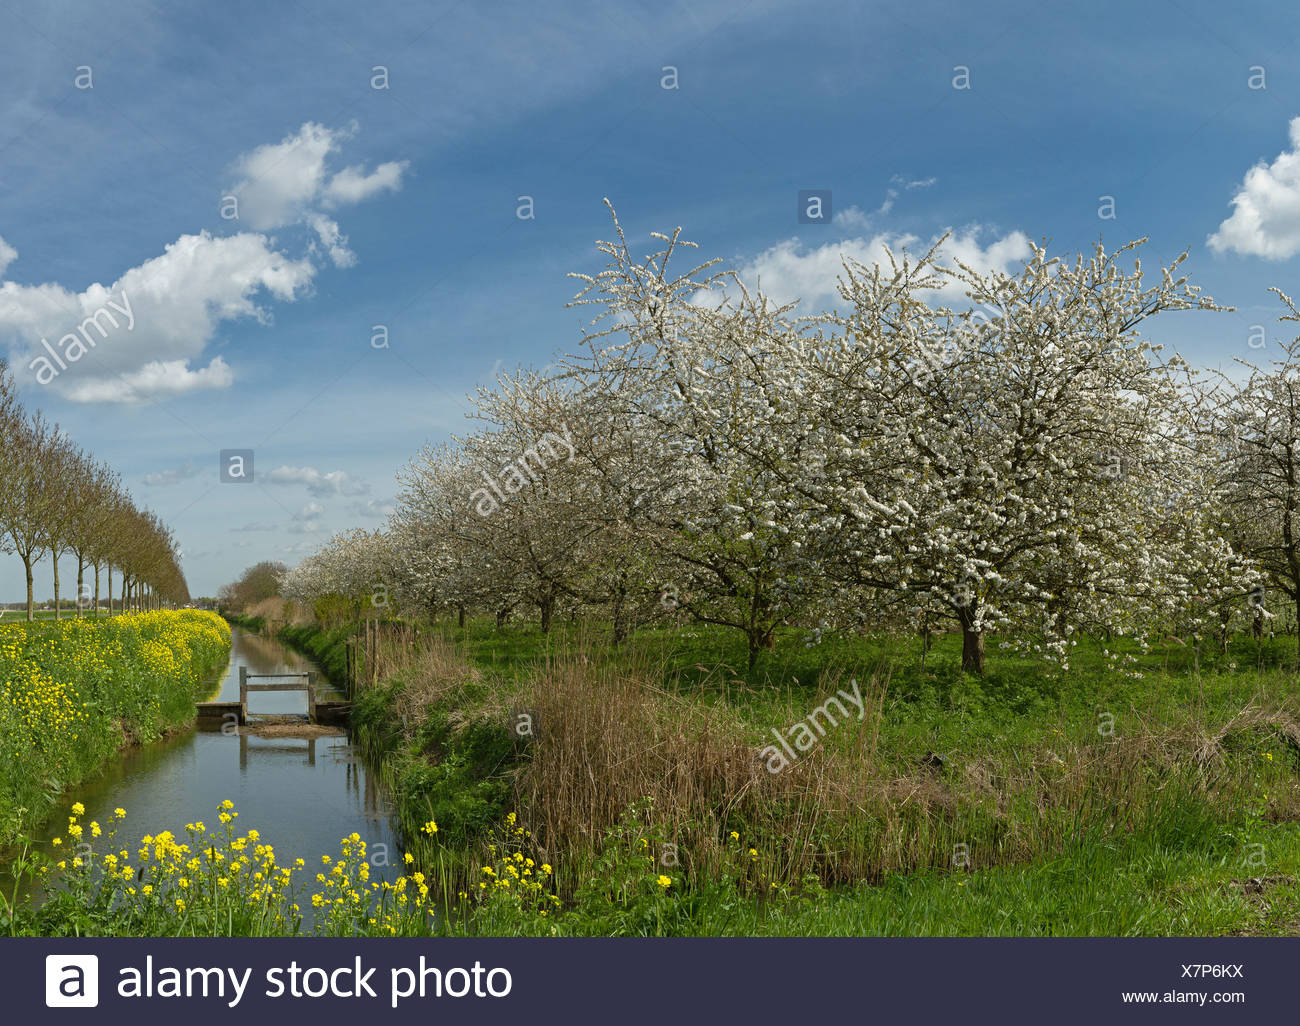 Holland, Netherlands, Europe, Dalem, Fruit trees, bloom, blooming, landscape, forest, wood, trees, spring, flowers, - Stock Image